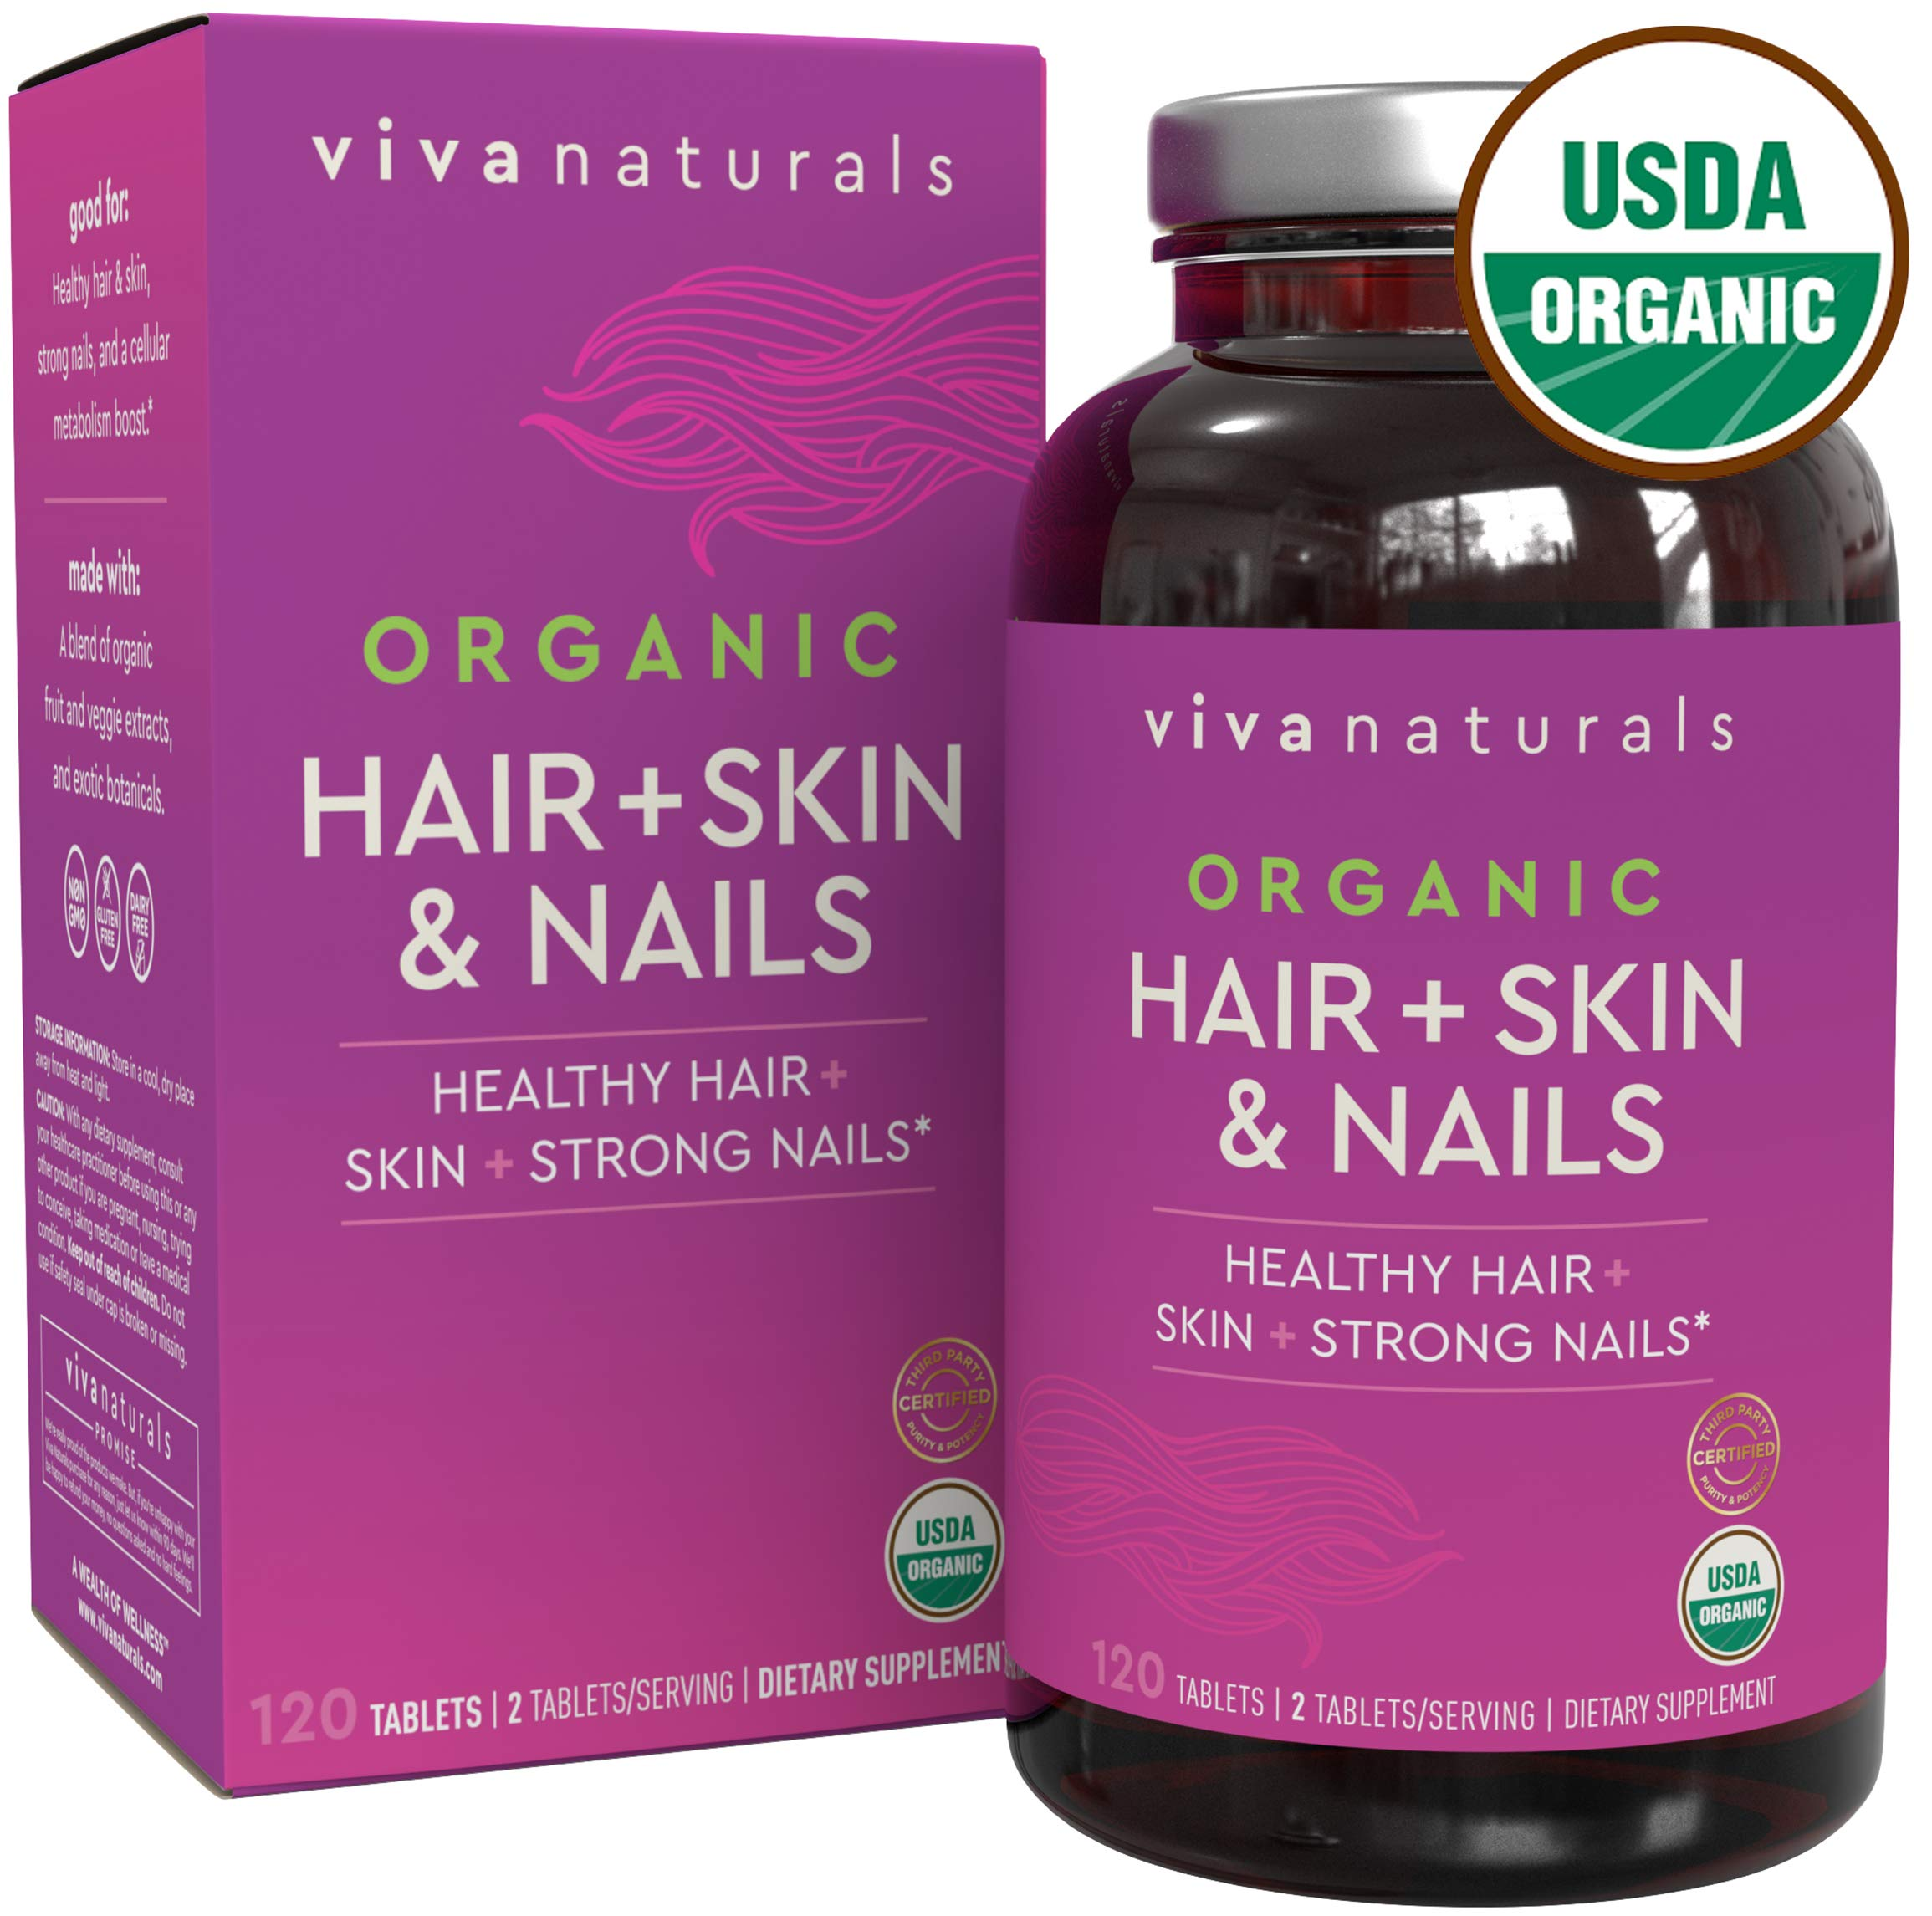 Hair Skin and Nails Vitamins for Women with High-Dose Biotin, Certified Organic; Hair Vitamins, Skin Vitamins, and Nail Growth, 120 Tablets. by Viva Naturals